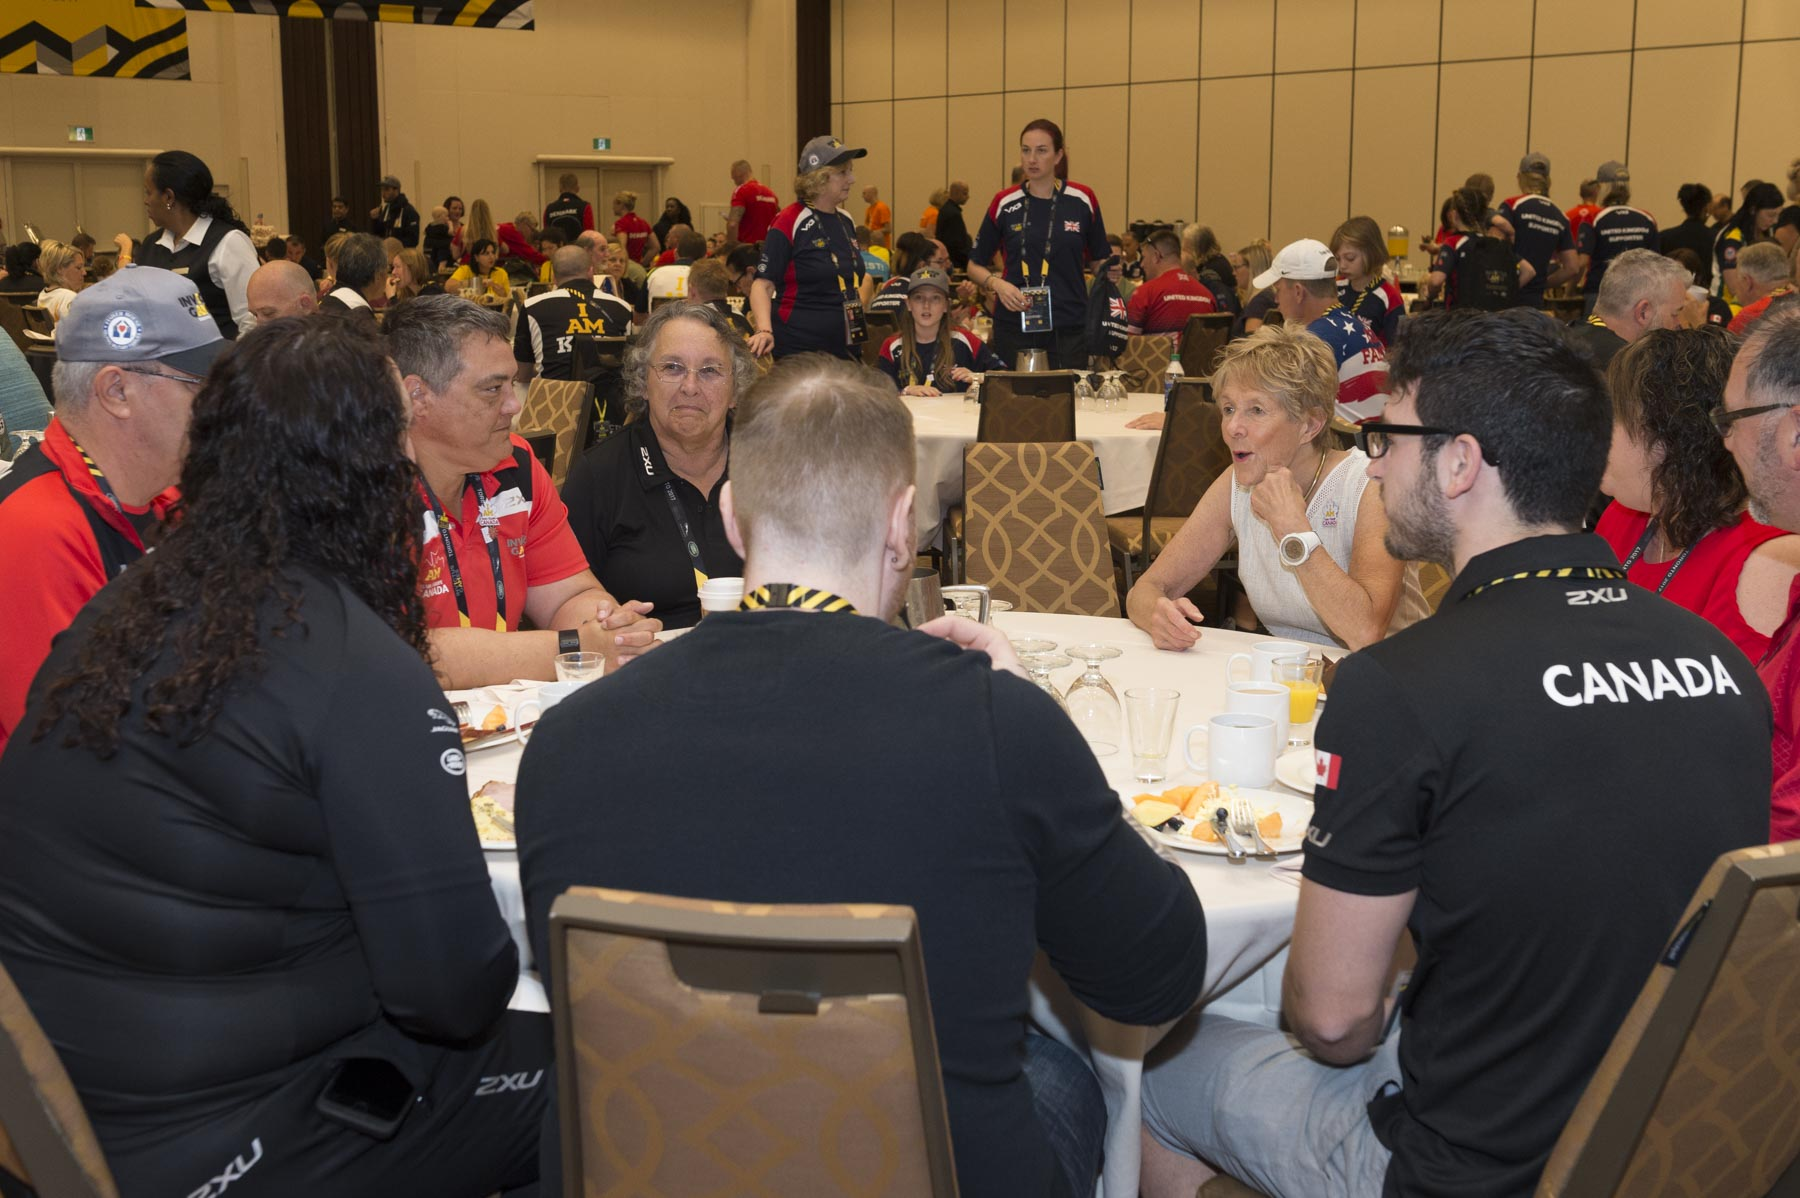 Her Excellency had the opportunity to have breakfast with Invictus Games Canadian competitors and their family members on September 24, 2017.